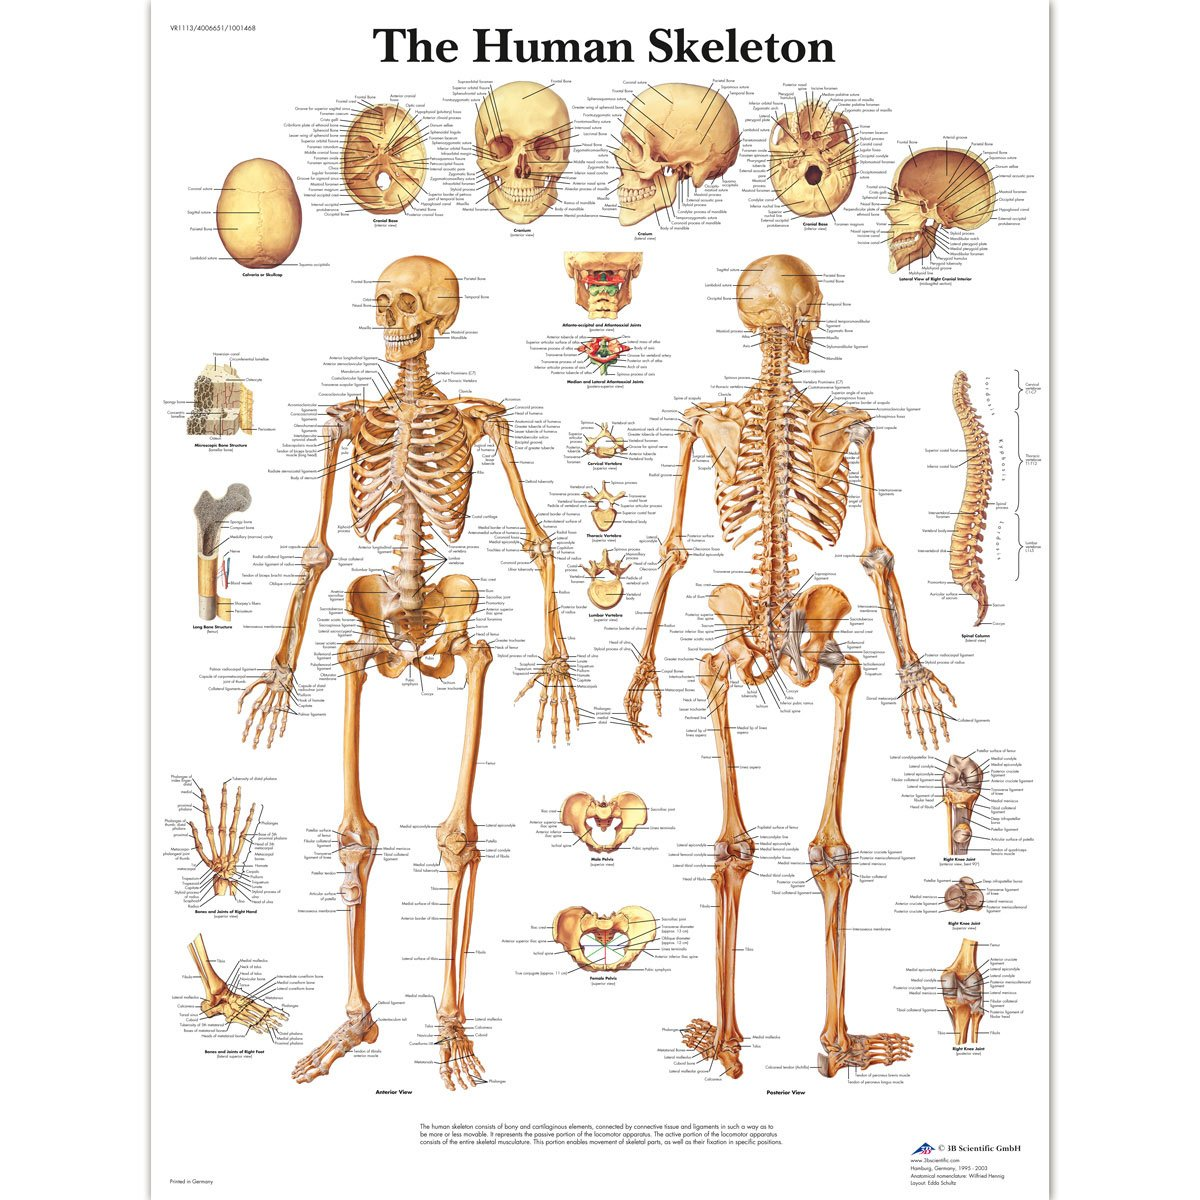 3B Scientific VR1113L Glossy Laminated Paper Human Skeleton Anatomical Chart, Poster Size 20-Inch Widthx26-Inch Height 1001468